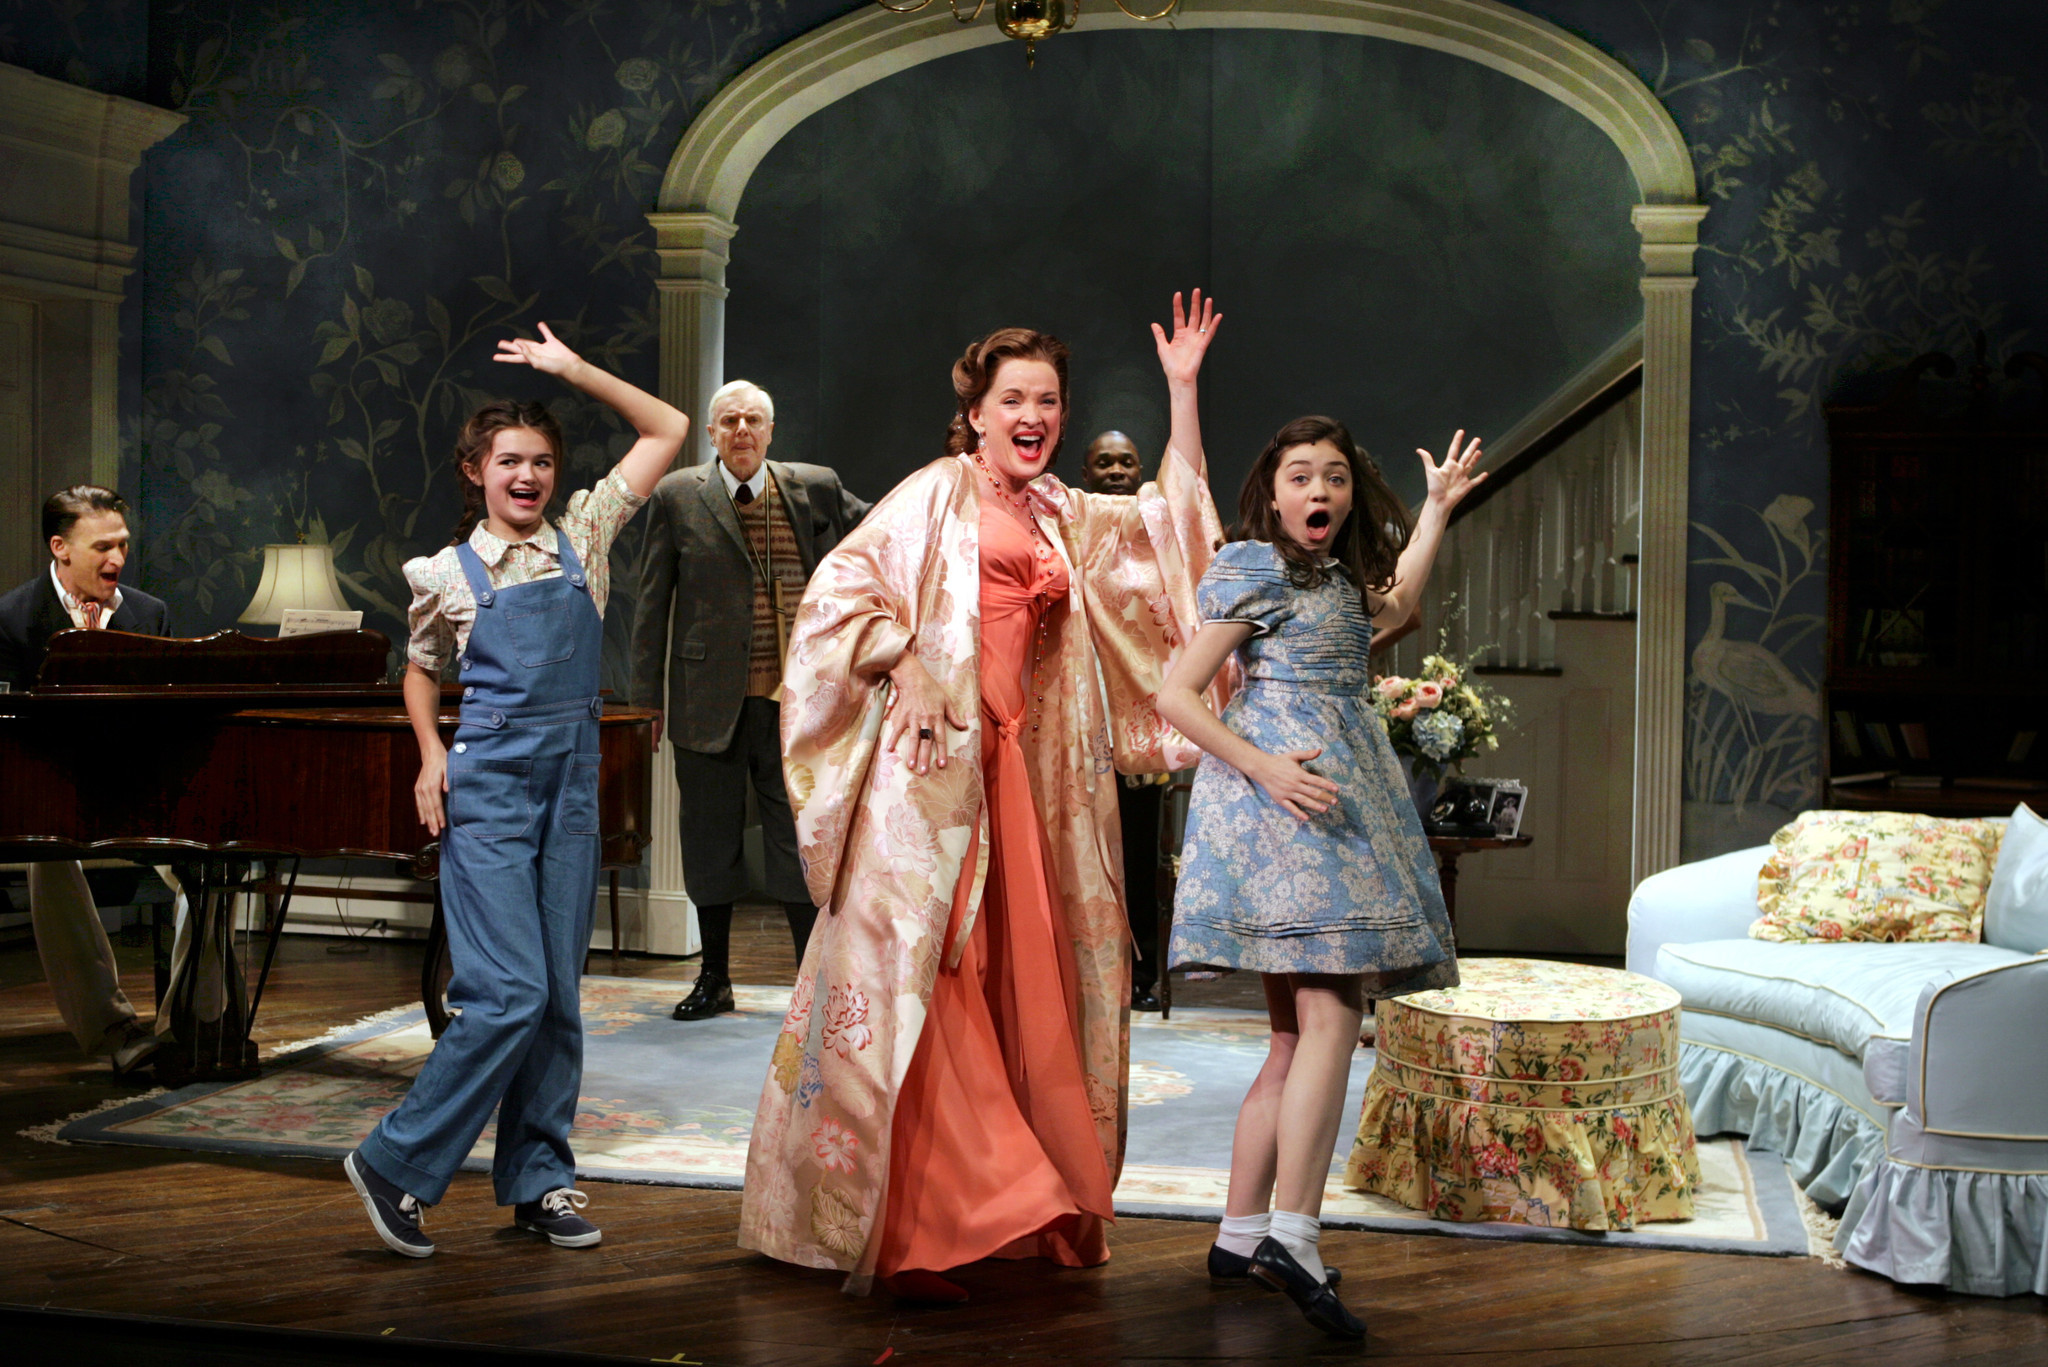 39 grey gardens 39 replaces 39 titanic 39 in center theater group 39 s 49th season la times